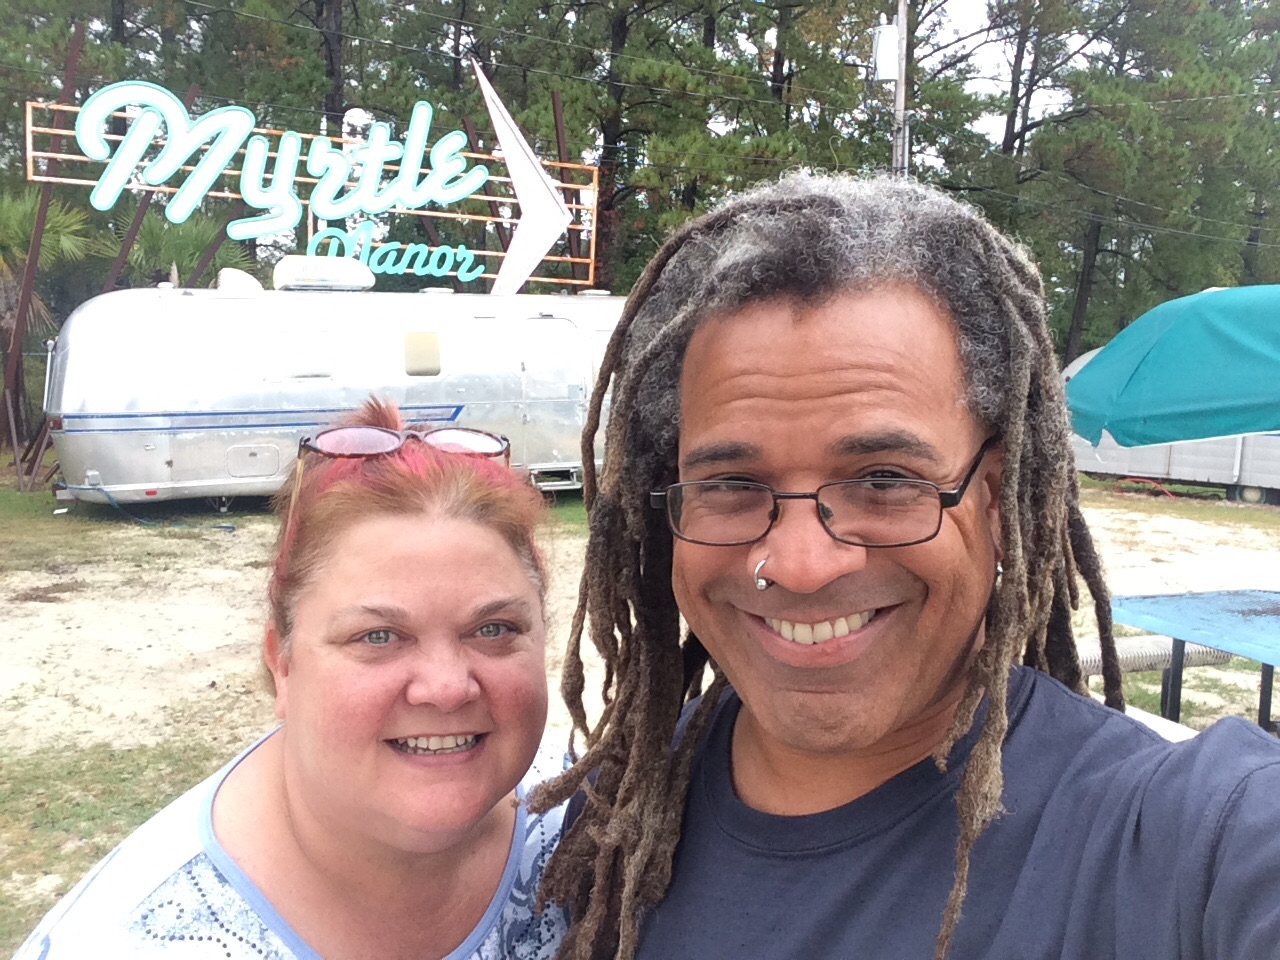 Most touristy thing we've done: visiting Myrtle Manor